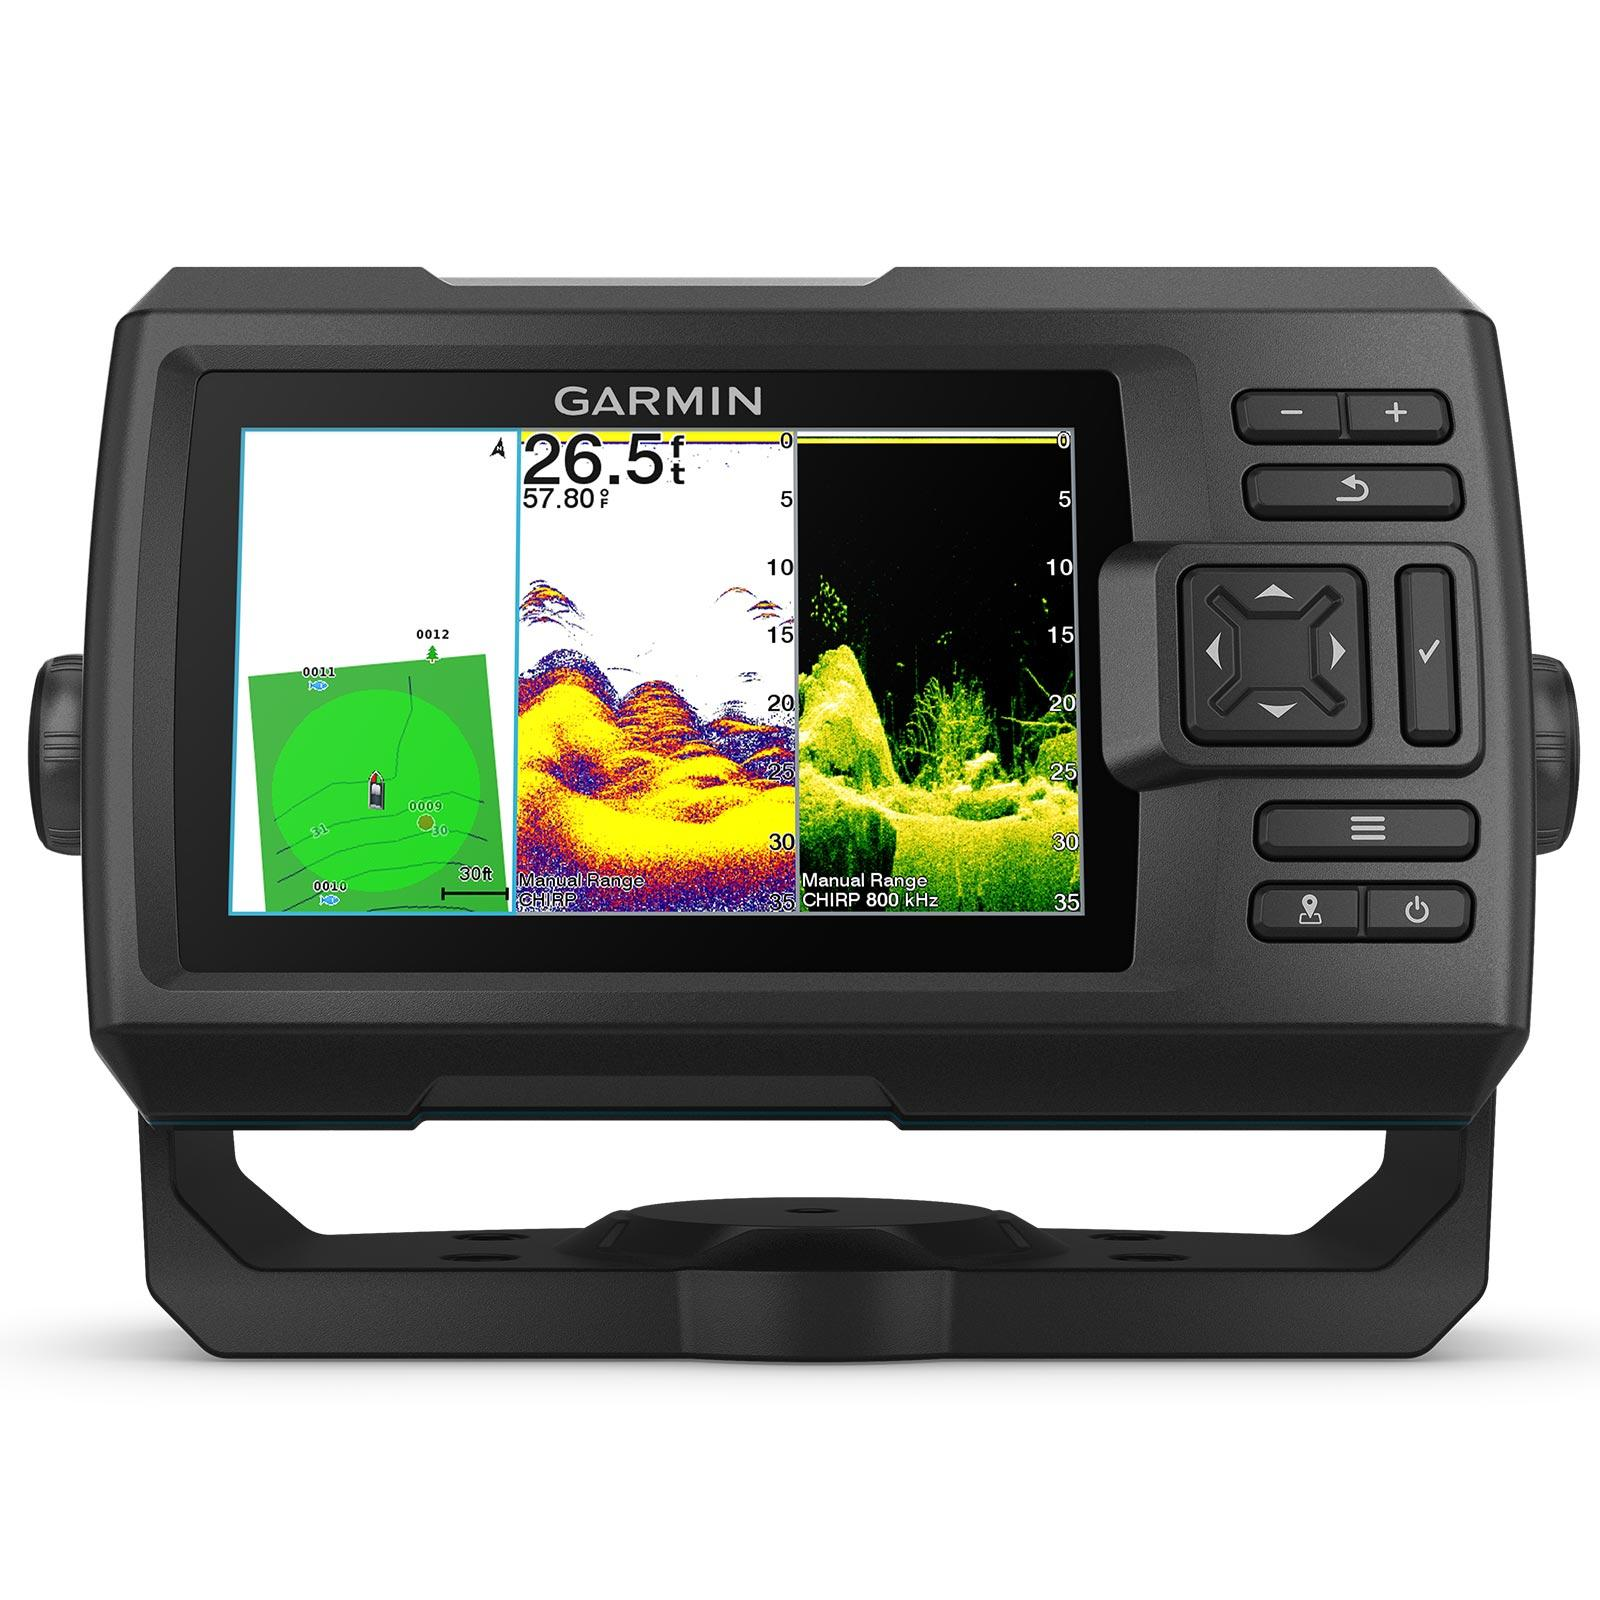 Garmin STRIKER Vivid 5cv with GT20-TM Transducer